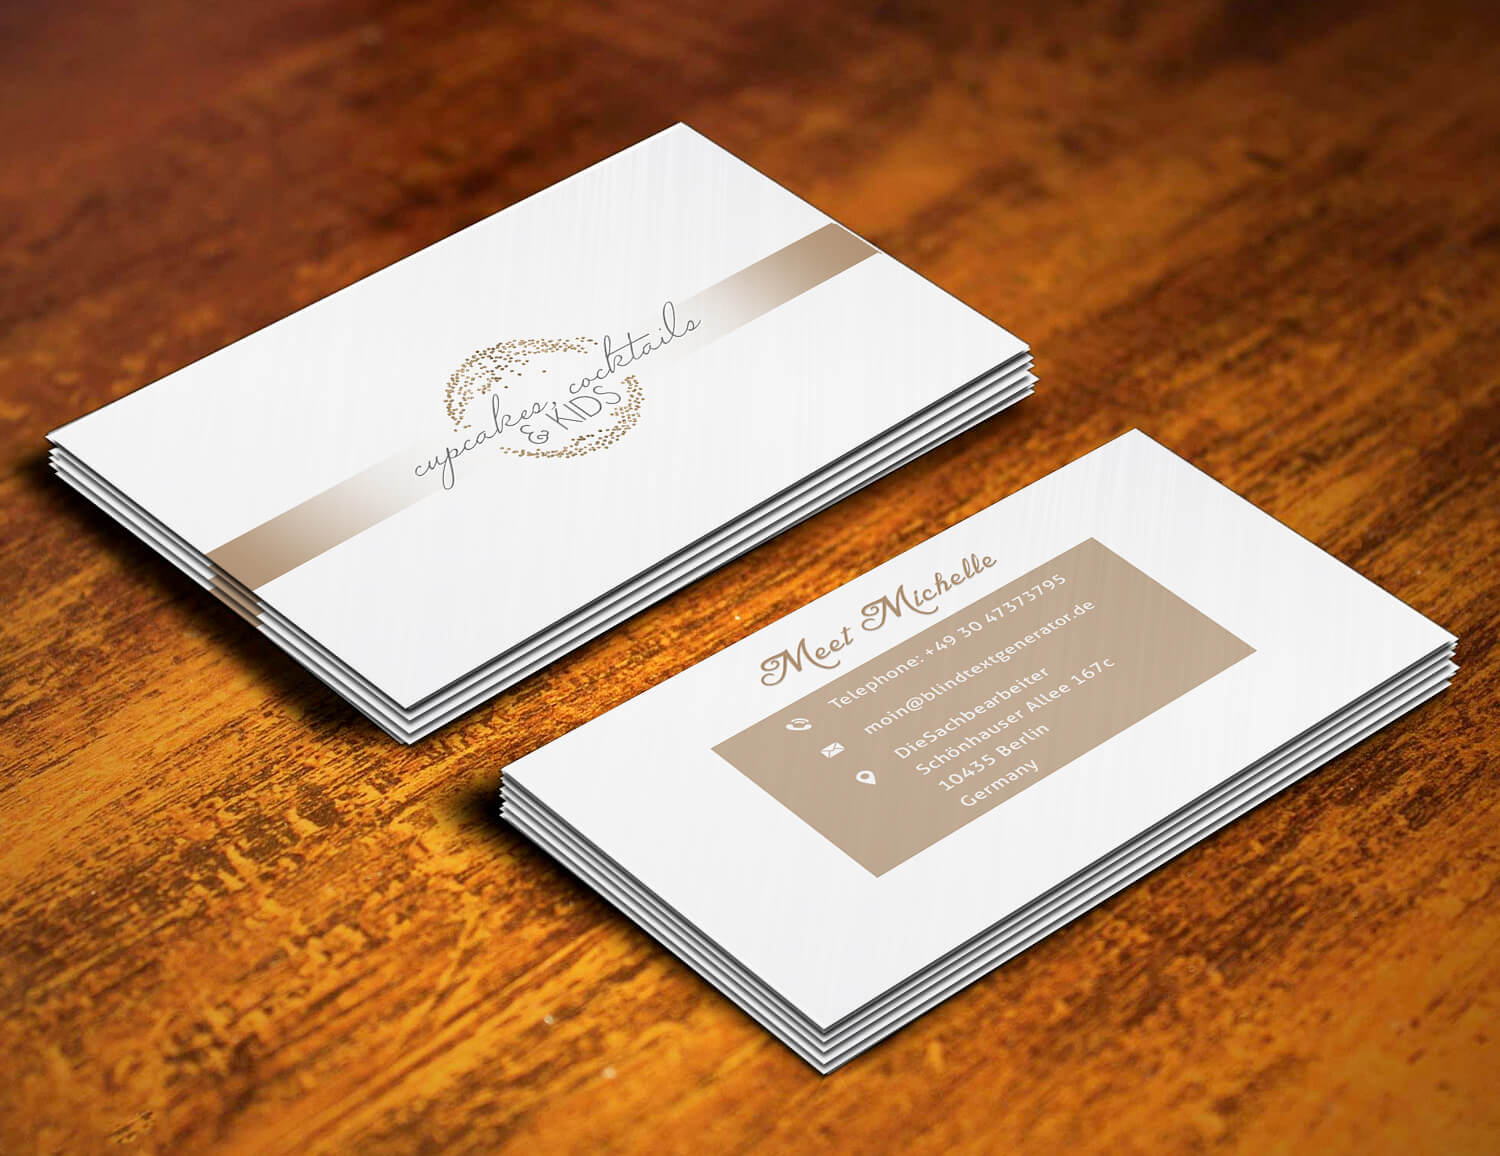 Cakes Business card design – Web Graphic Designs